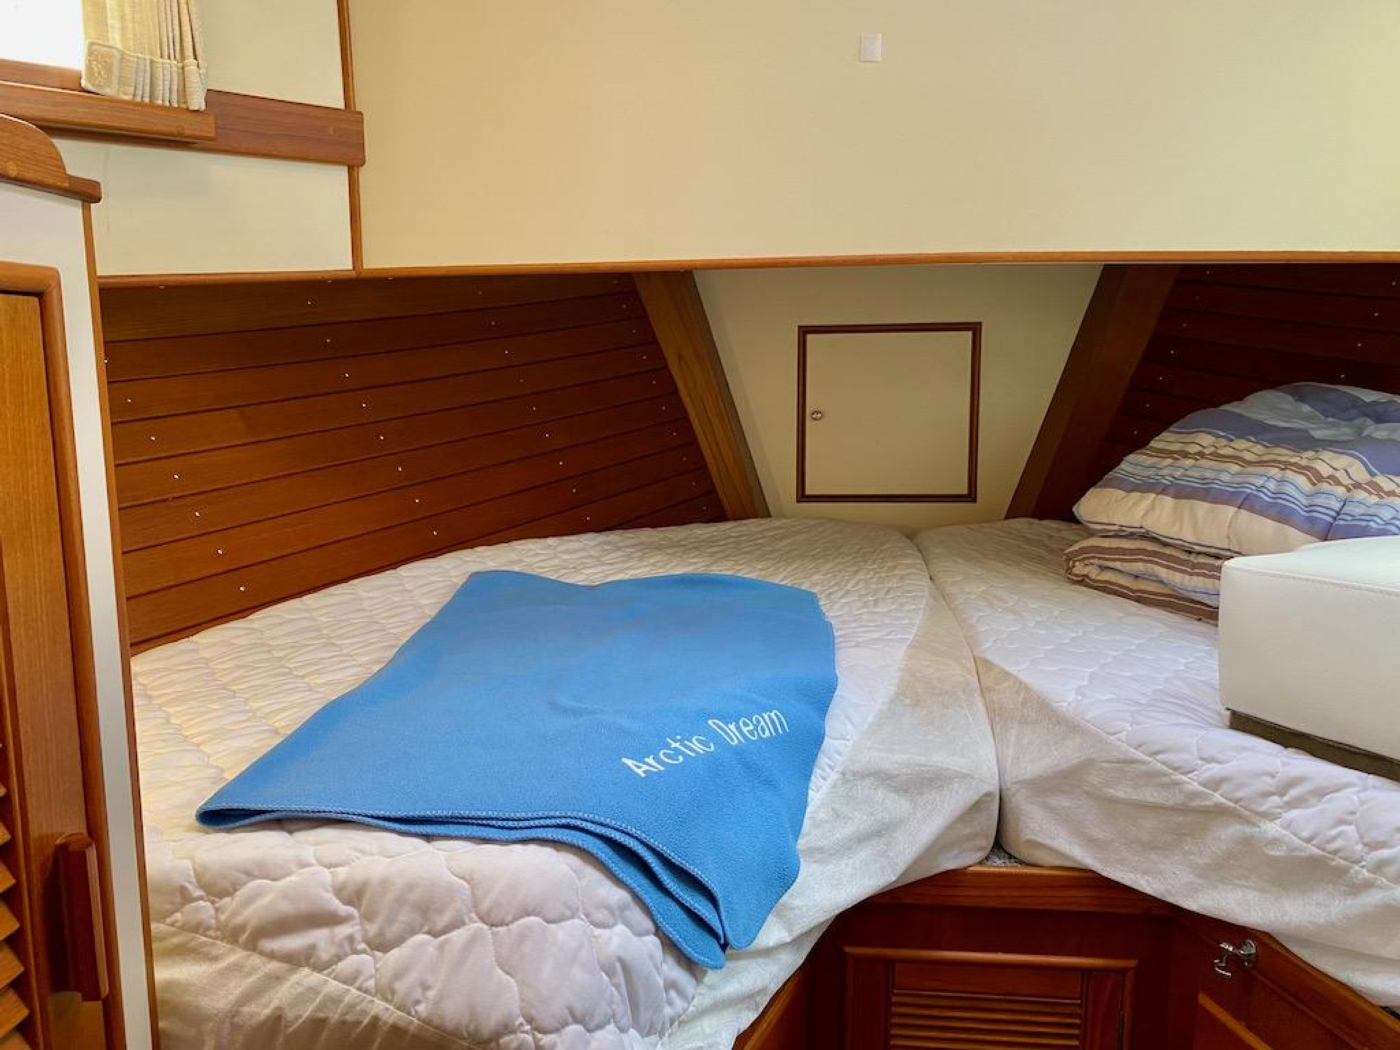 1998 Grand Banks 42 Classic, Fwd guest cabin 1